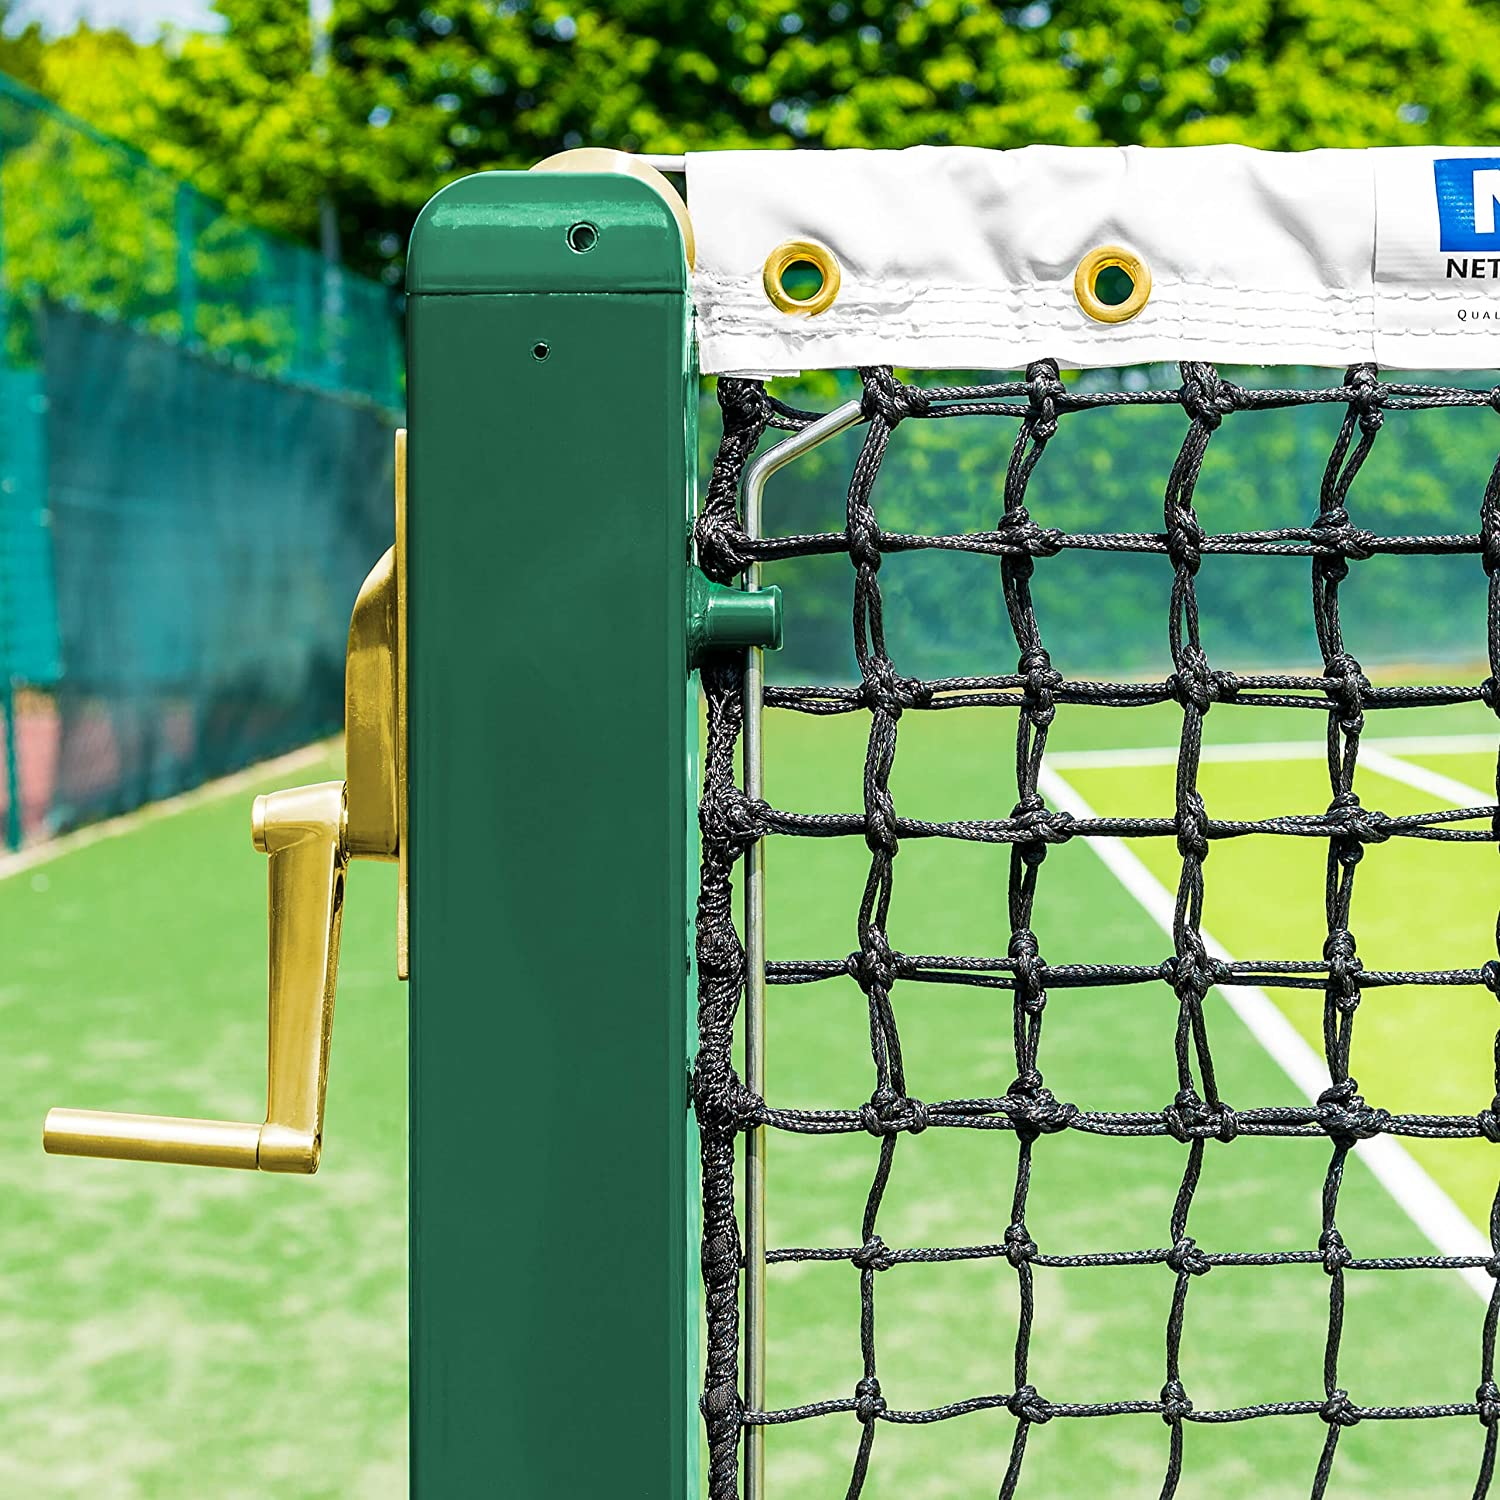 76 Powder Coated Steel Vermont Square Tennis Posts Optional Ground Sockets | ITF Regulation Posts